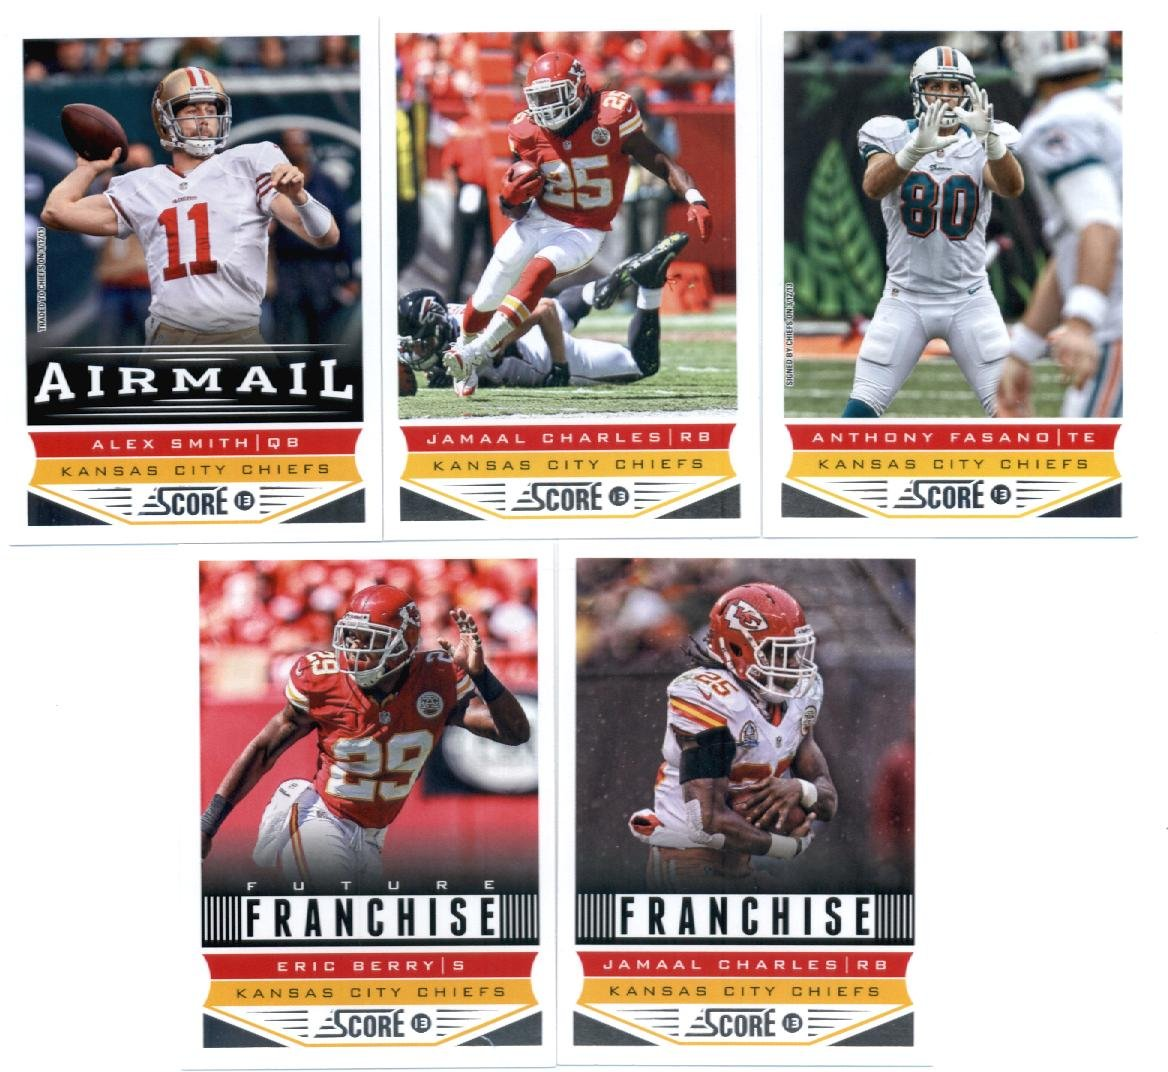 2013 Score Football Cards Kansas City Chiefs Team Set In Collector's